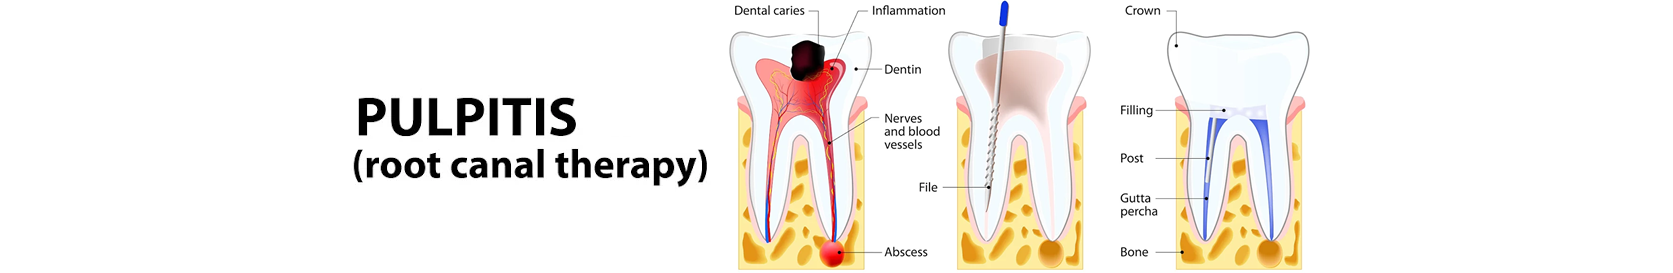 Pulpitis root canal therapy)